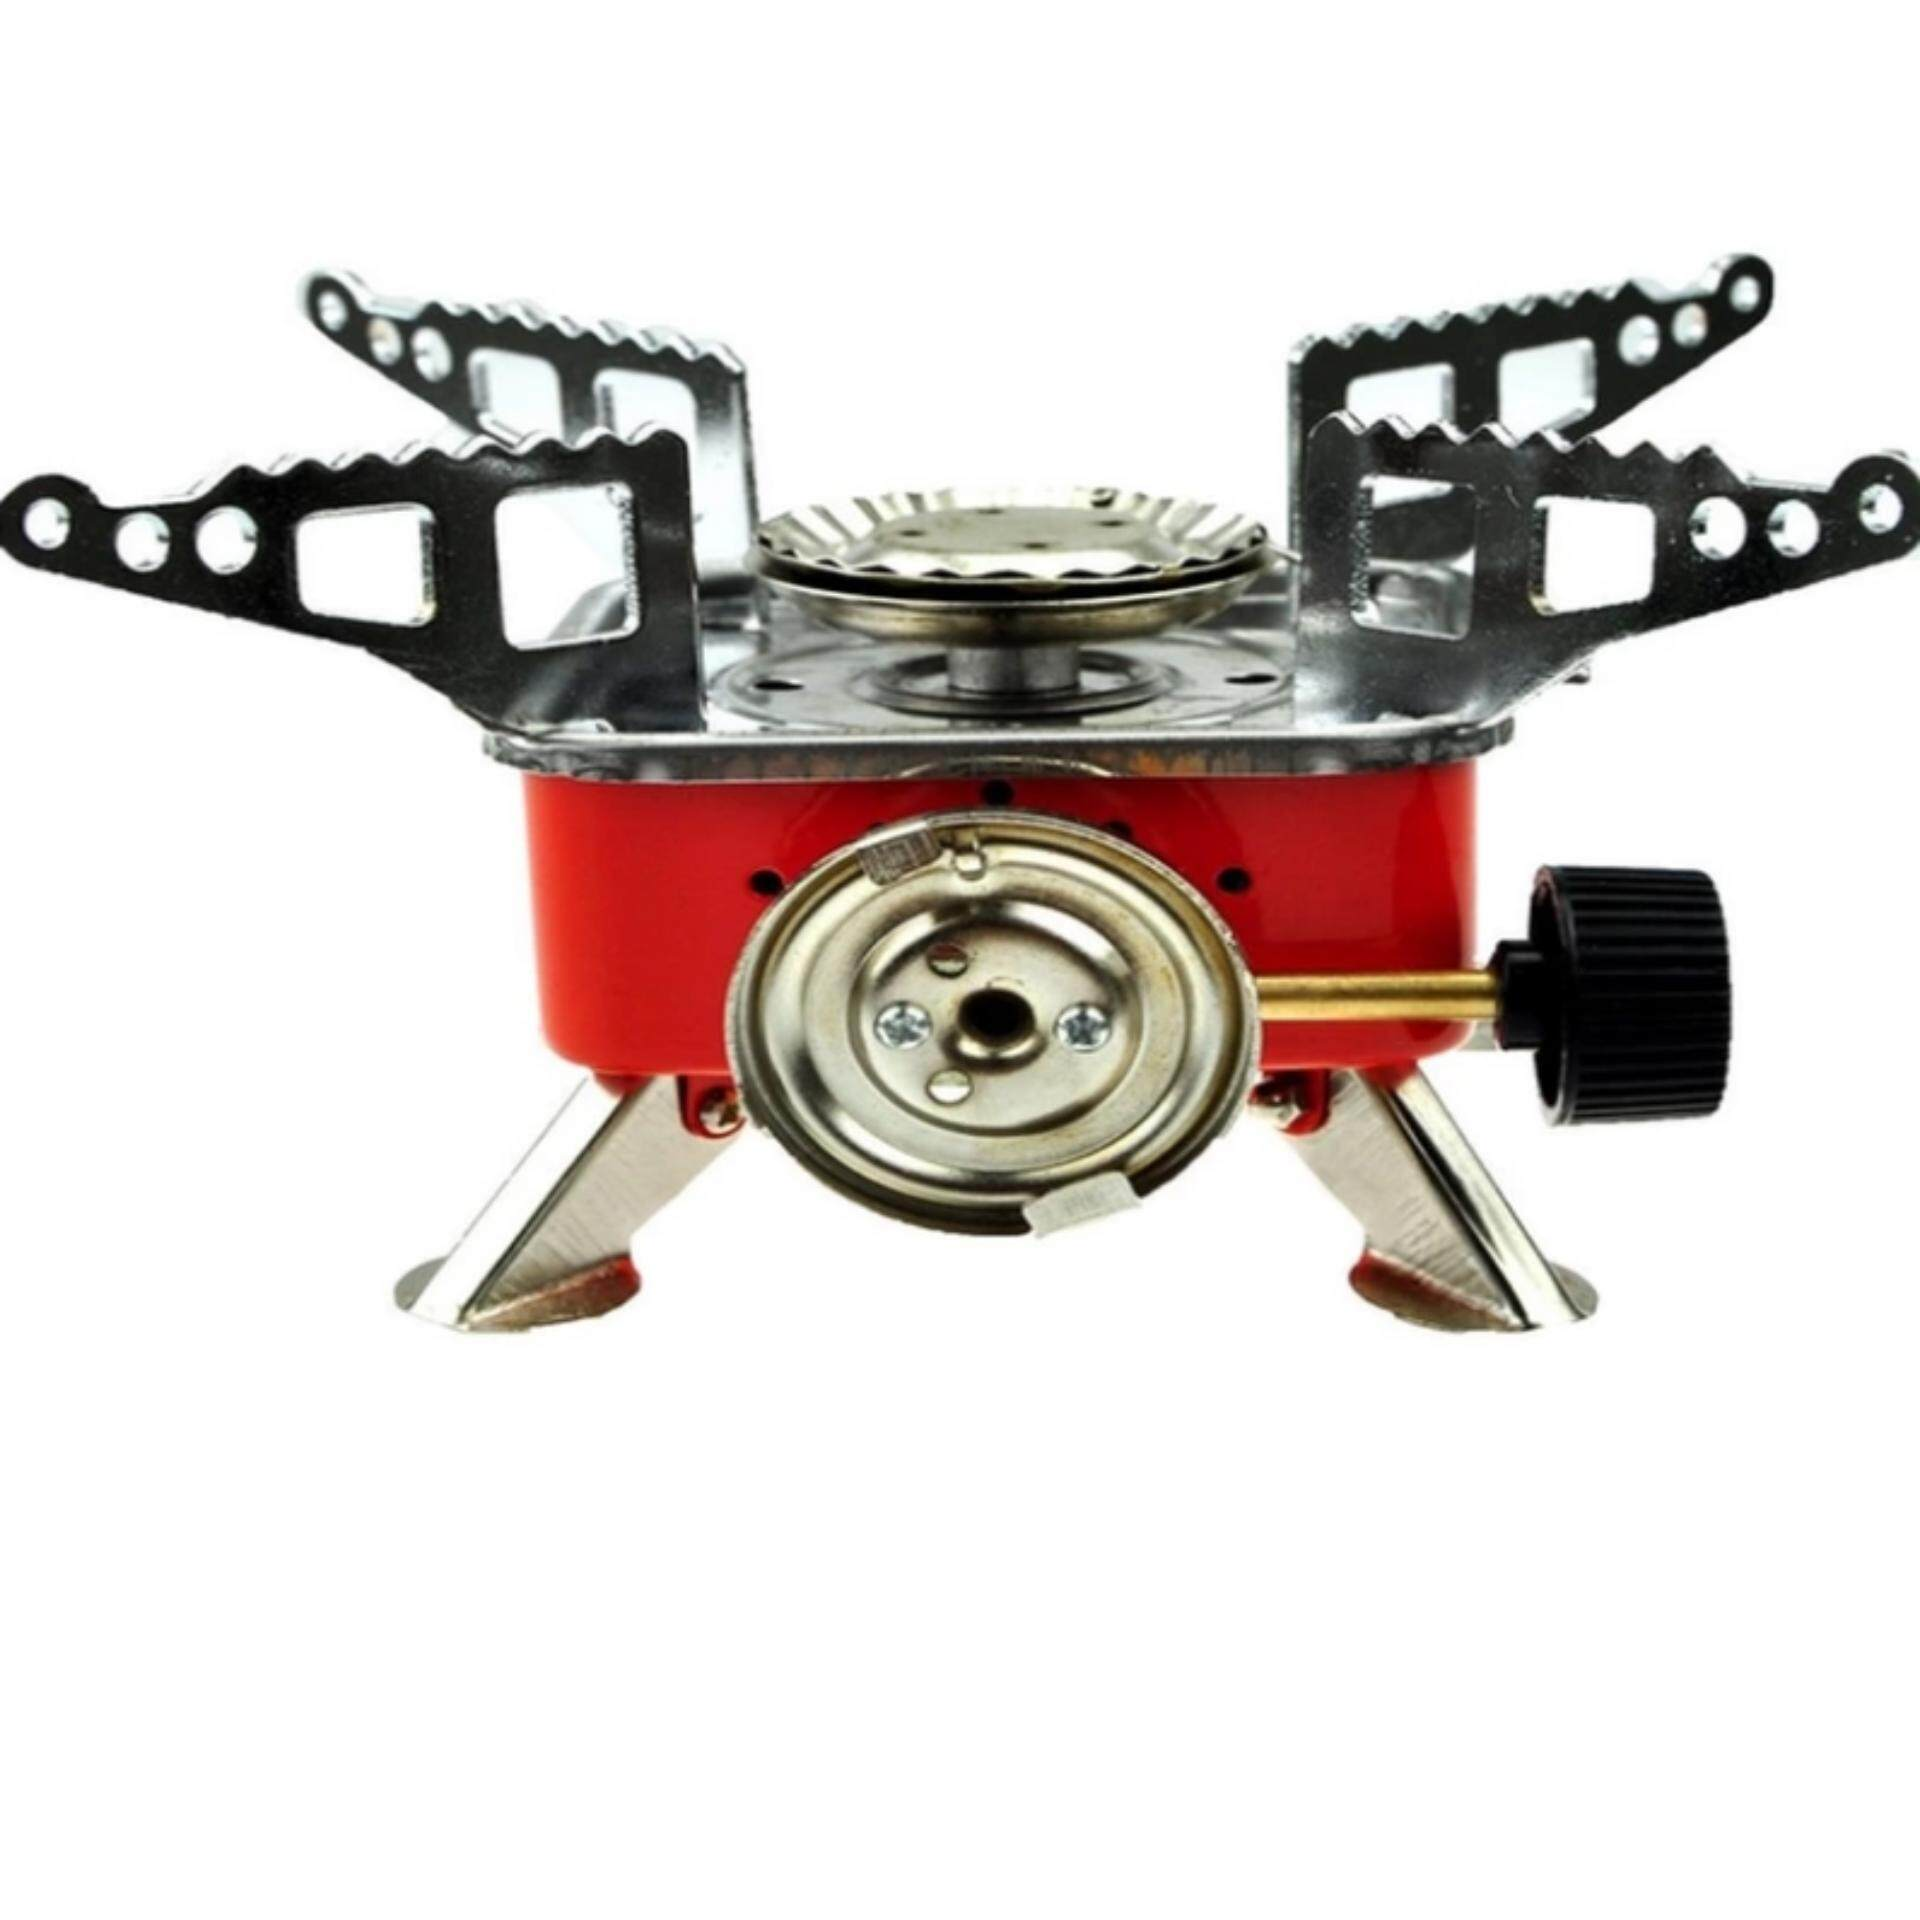 iremax CATEC mini Portable Card Type Stove-red เตาแก๊สพกพา